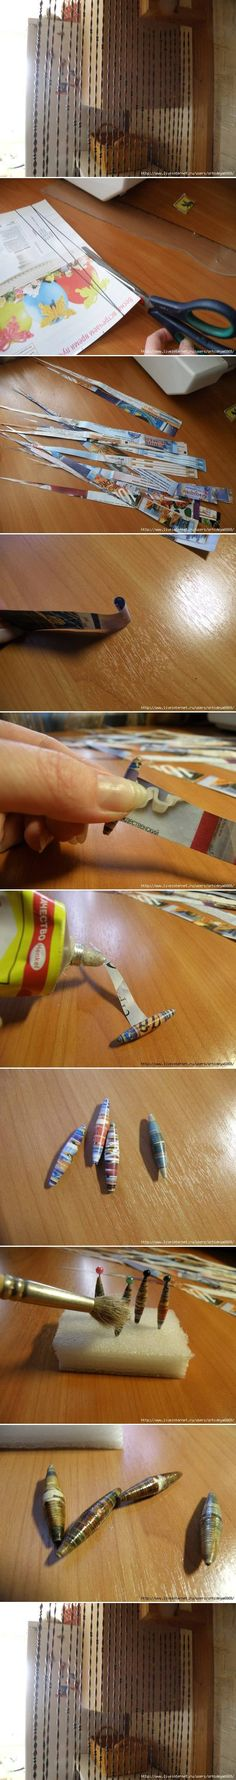 DIY Newspaper Beads Curtain DIY Projects | UsefulDIY.com Follow Us on Facebook ==> http://www.facebook.com/UsefulDiy